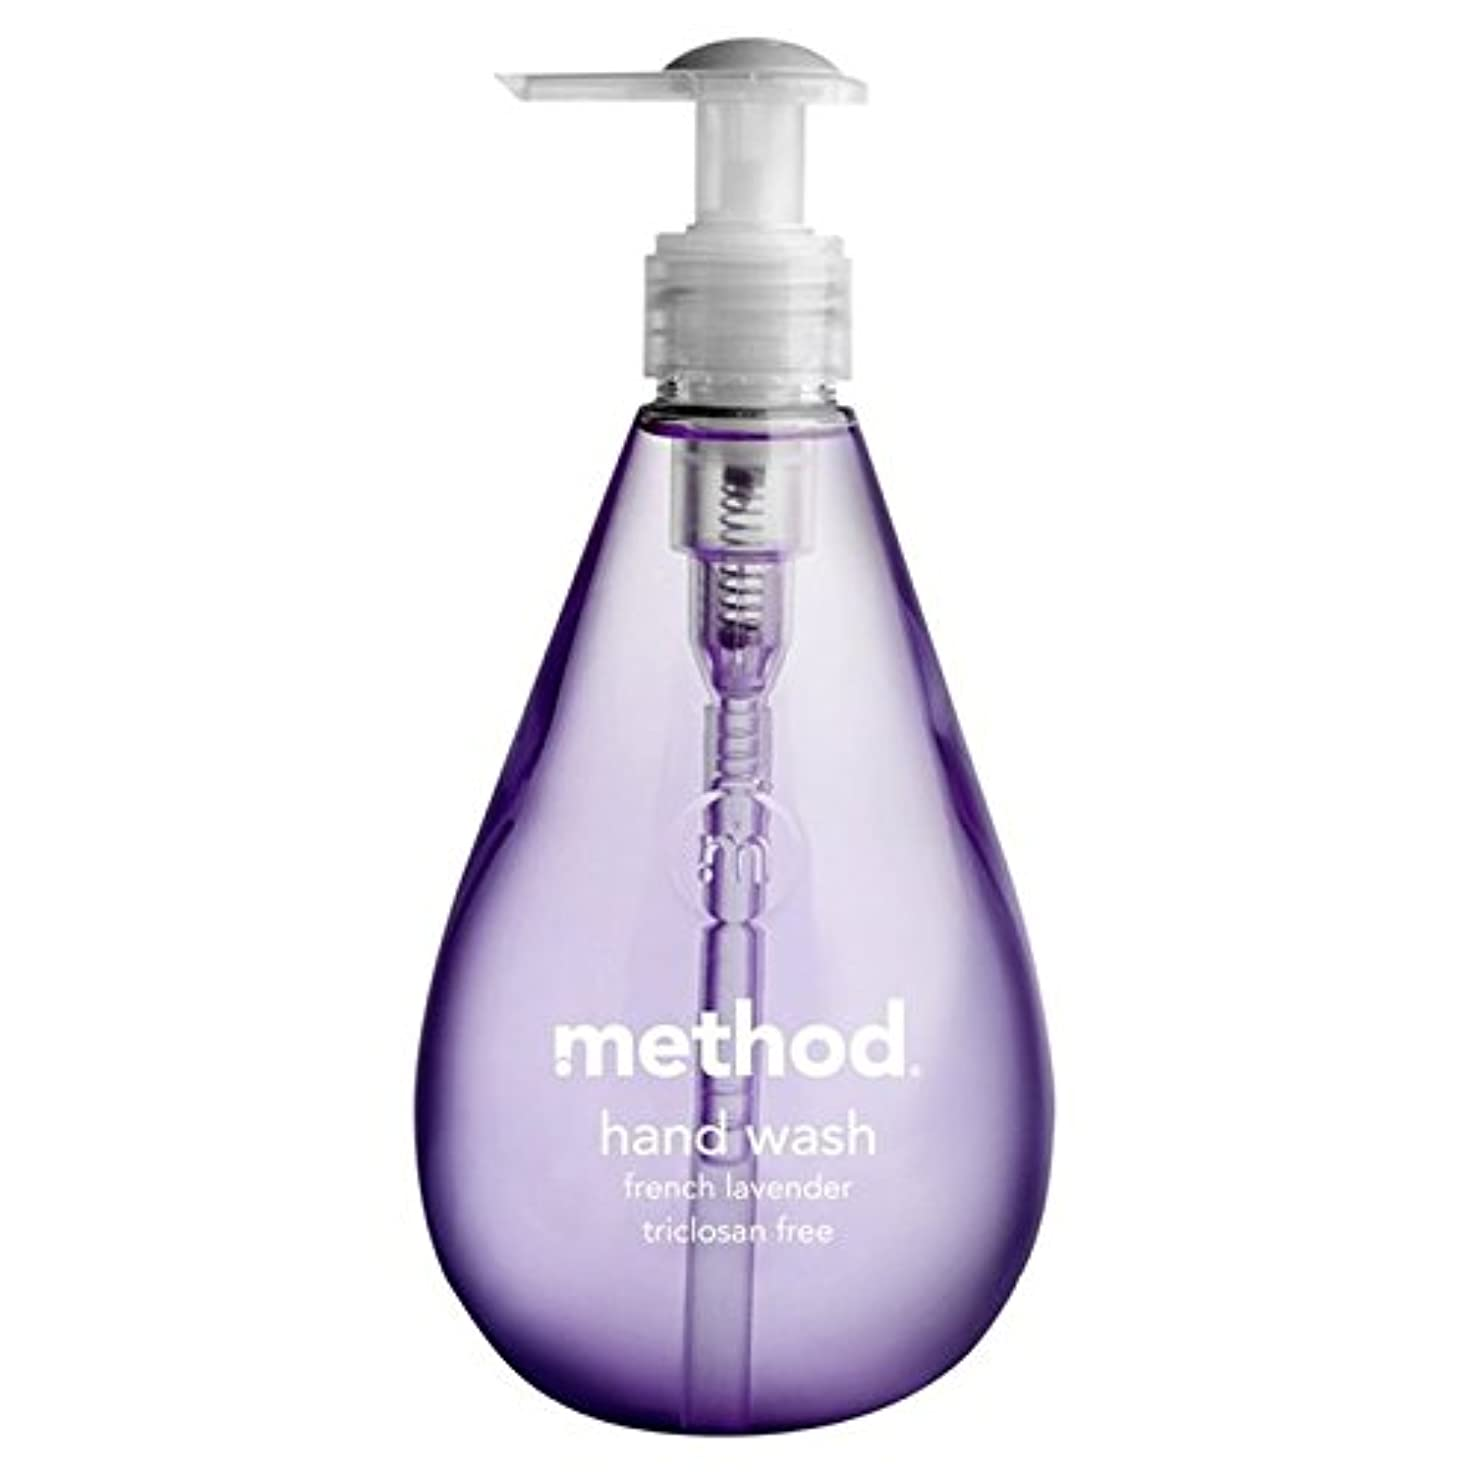 Method French Lavender Handsoap 354ml (Pack of 6) - メソッドフレンチラベンダーの354ミリリットル x6 [並行輸入品]